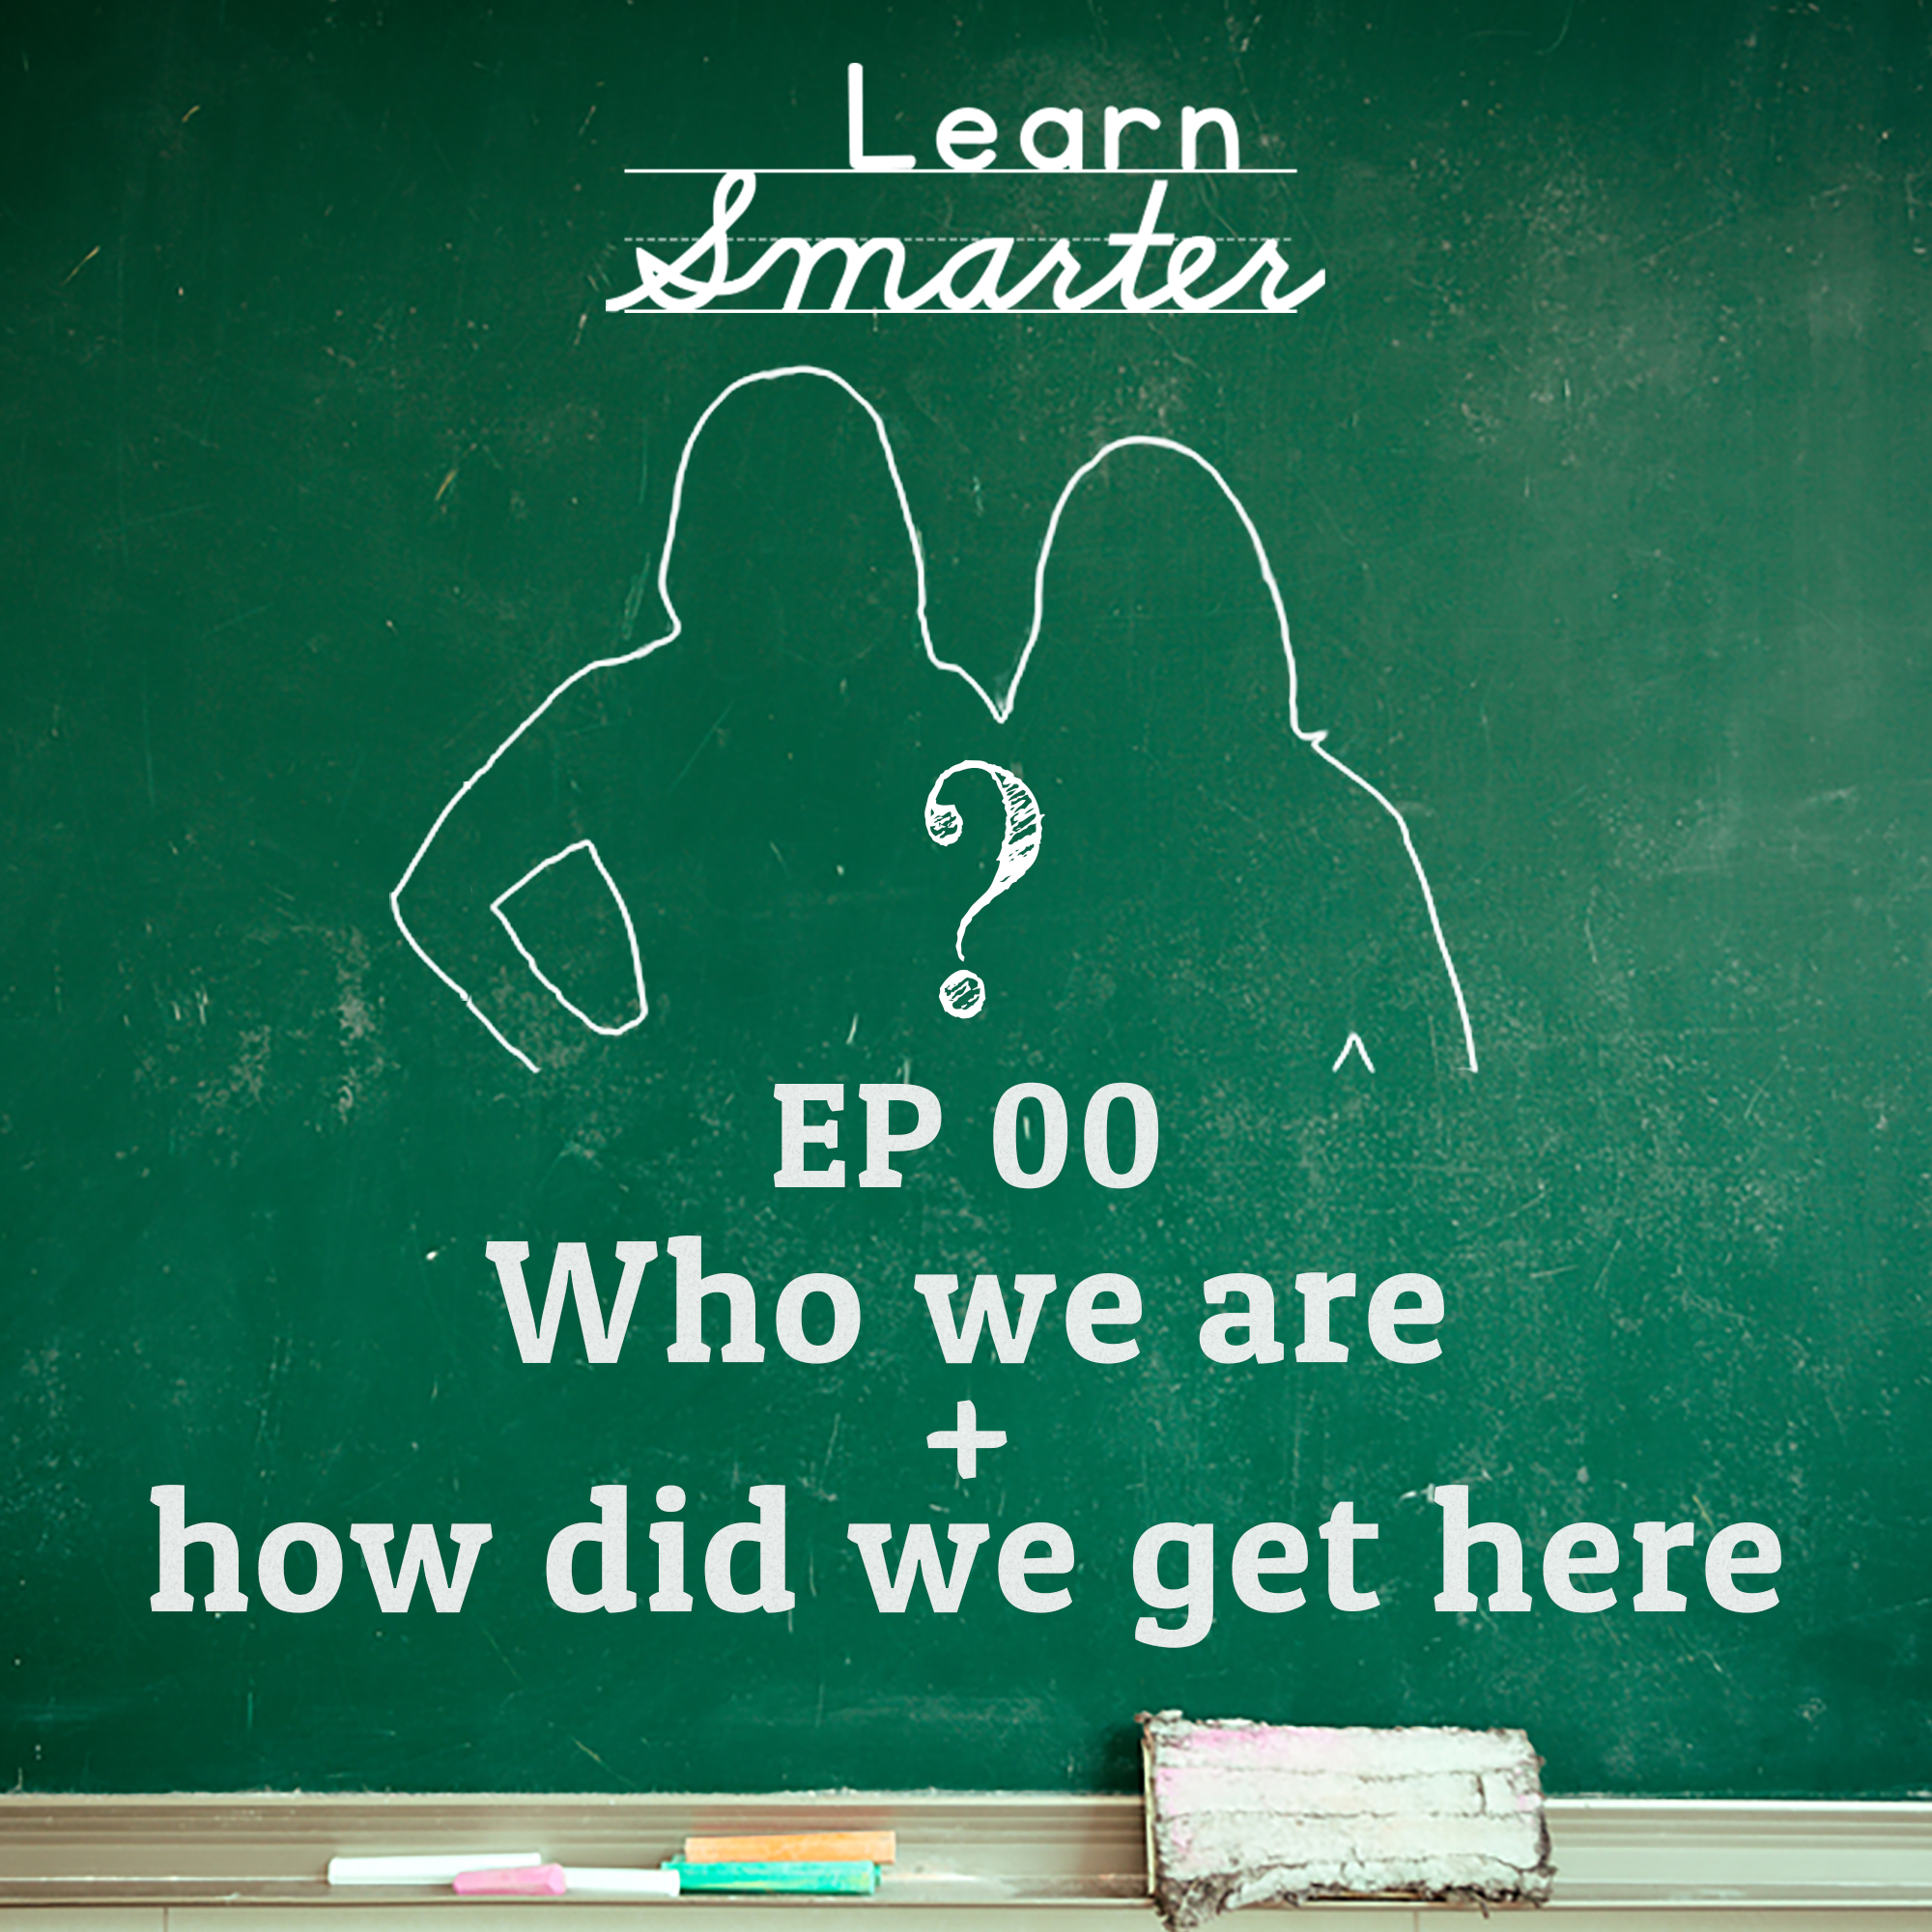 Ep 00:  Who we are and how we got here